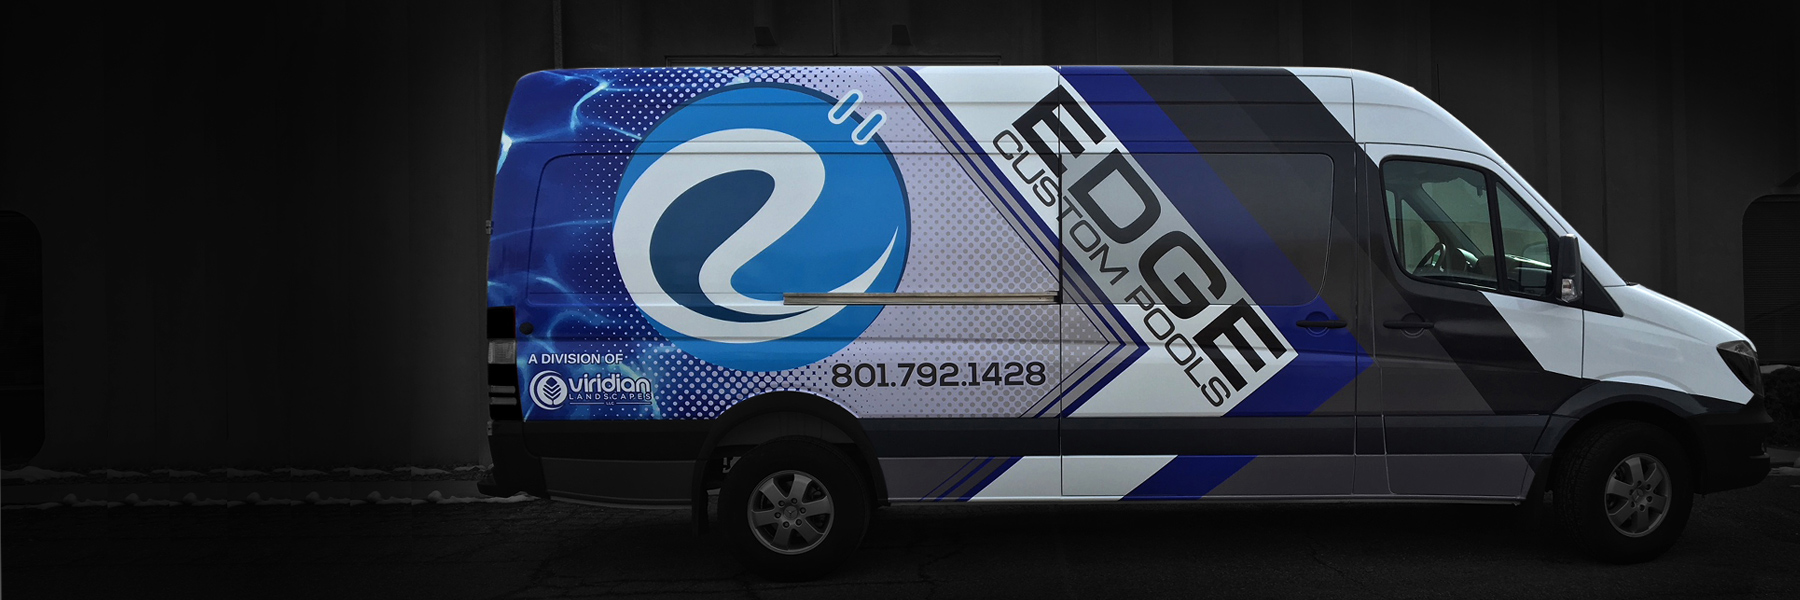 Utah Vehicle Wraps - Edge Van